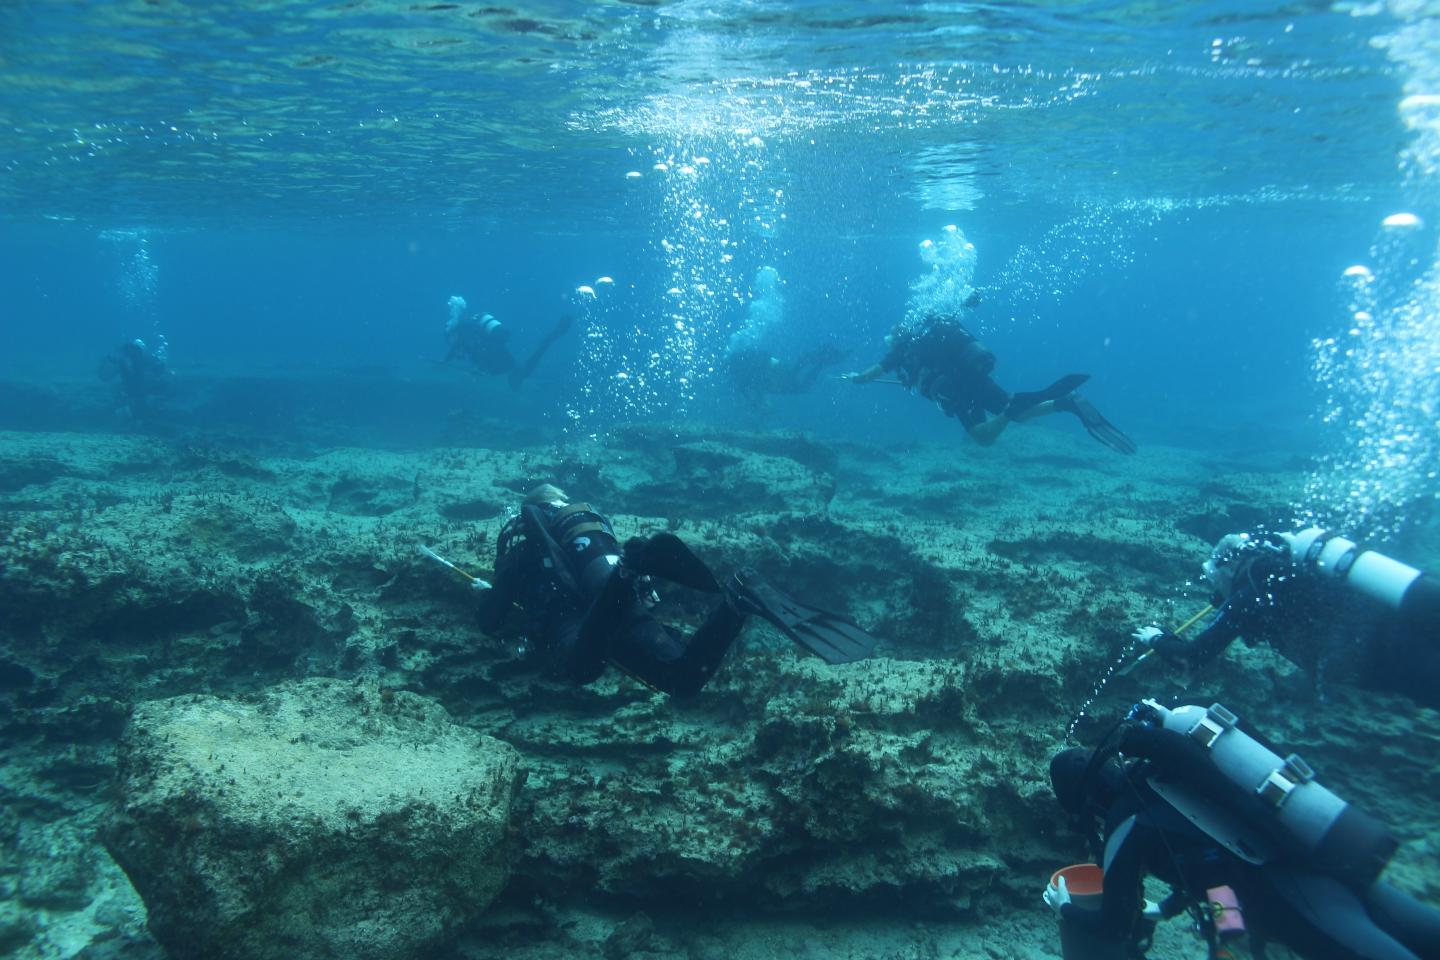 Lionfish removal event off the coast of Cyprus